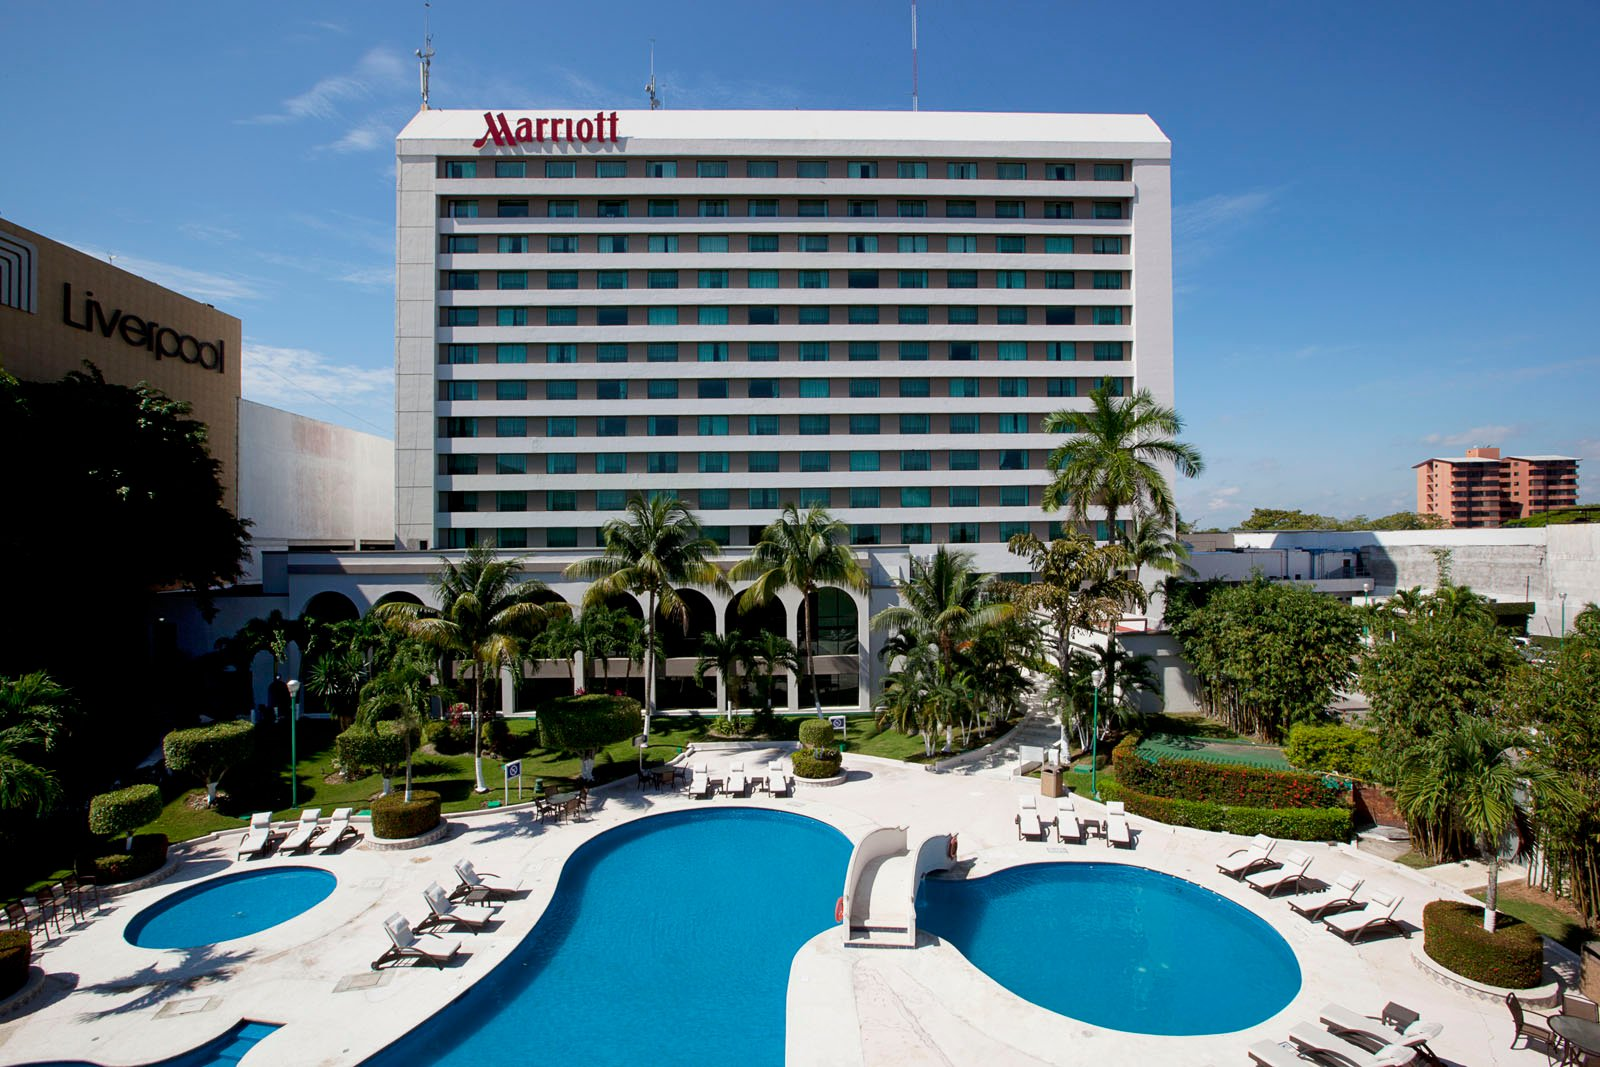 ‪Villahermosa Marriott Hotel‬